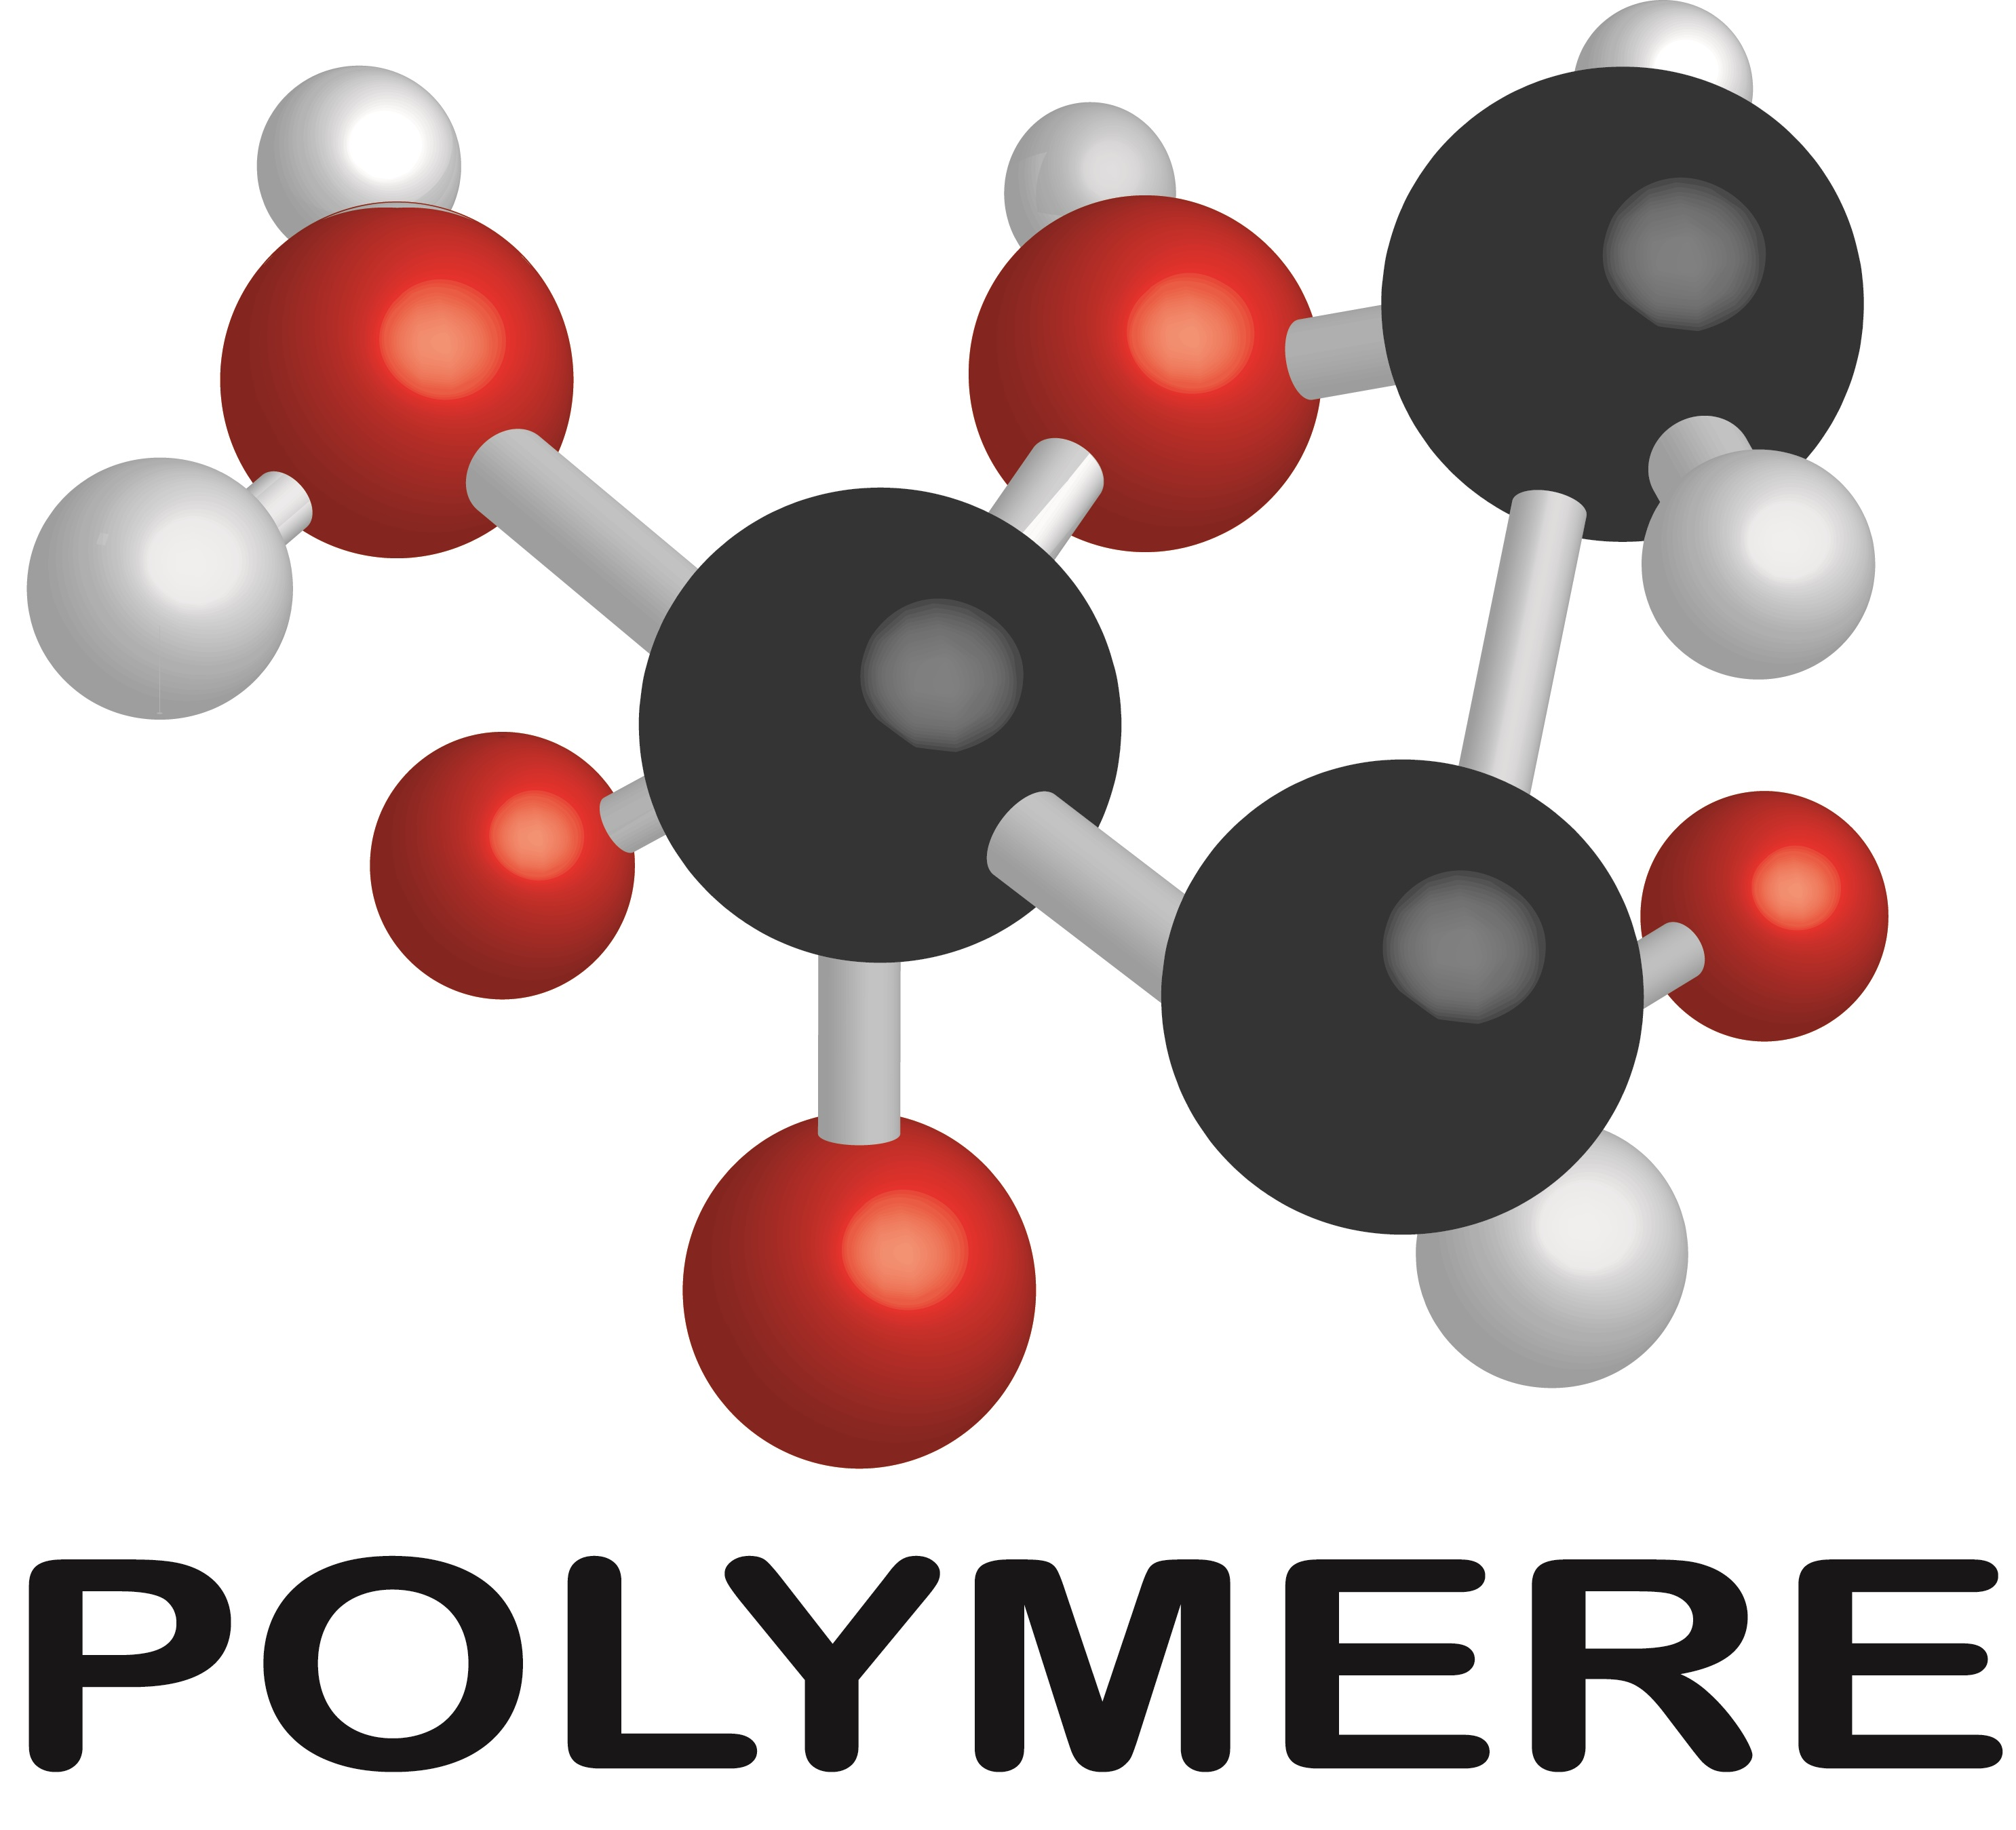 Association - POLYMERE LABORATOIRE D'IDEES